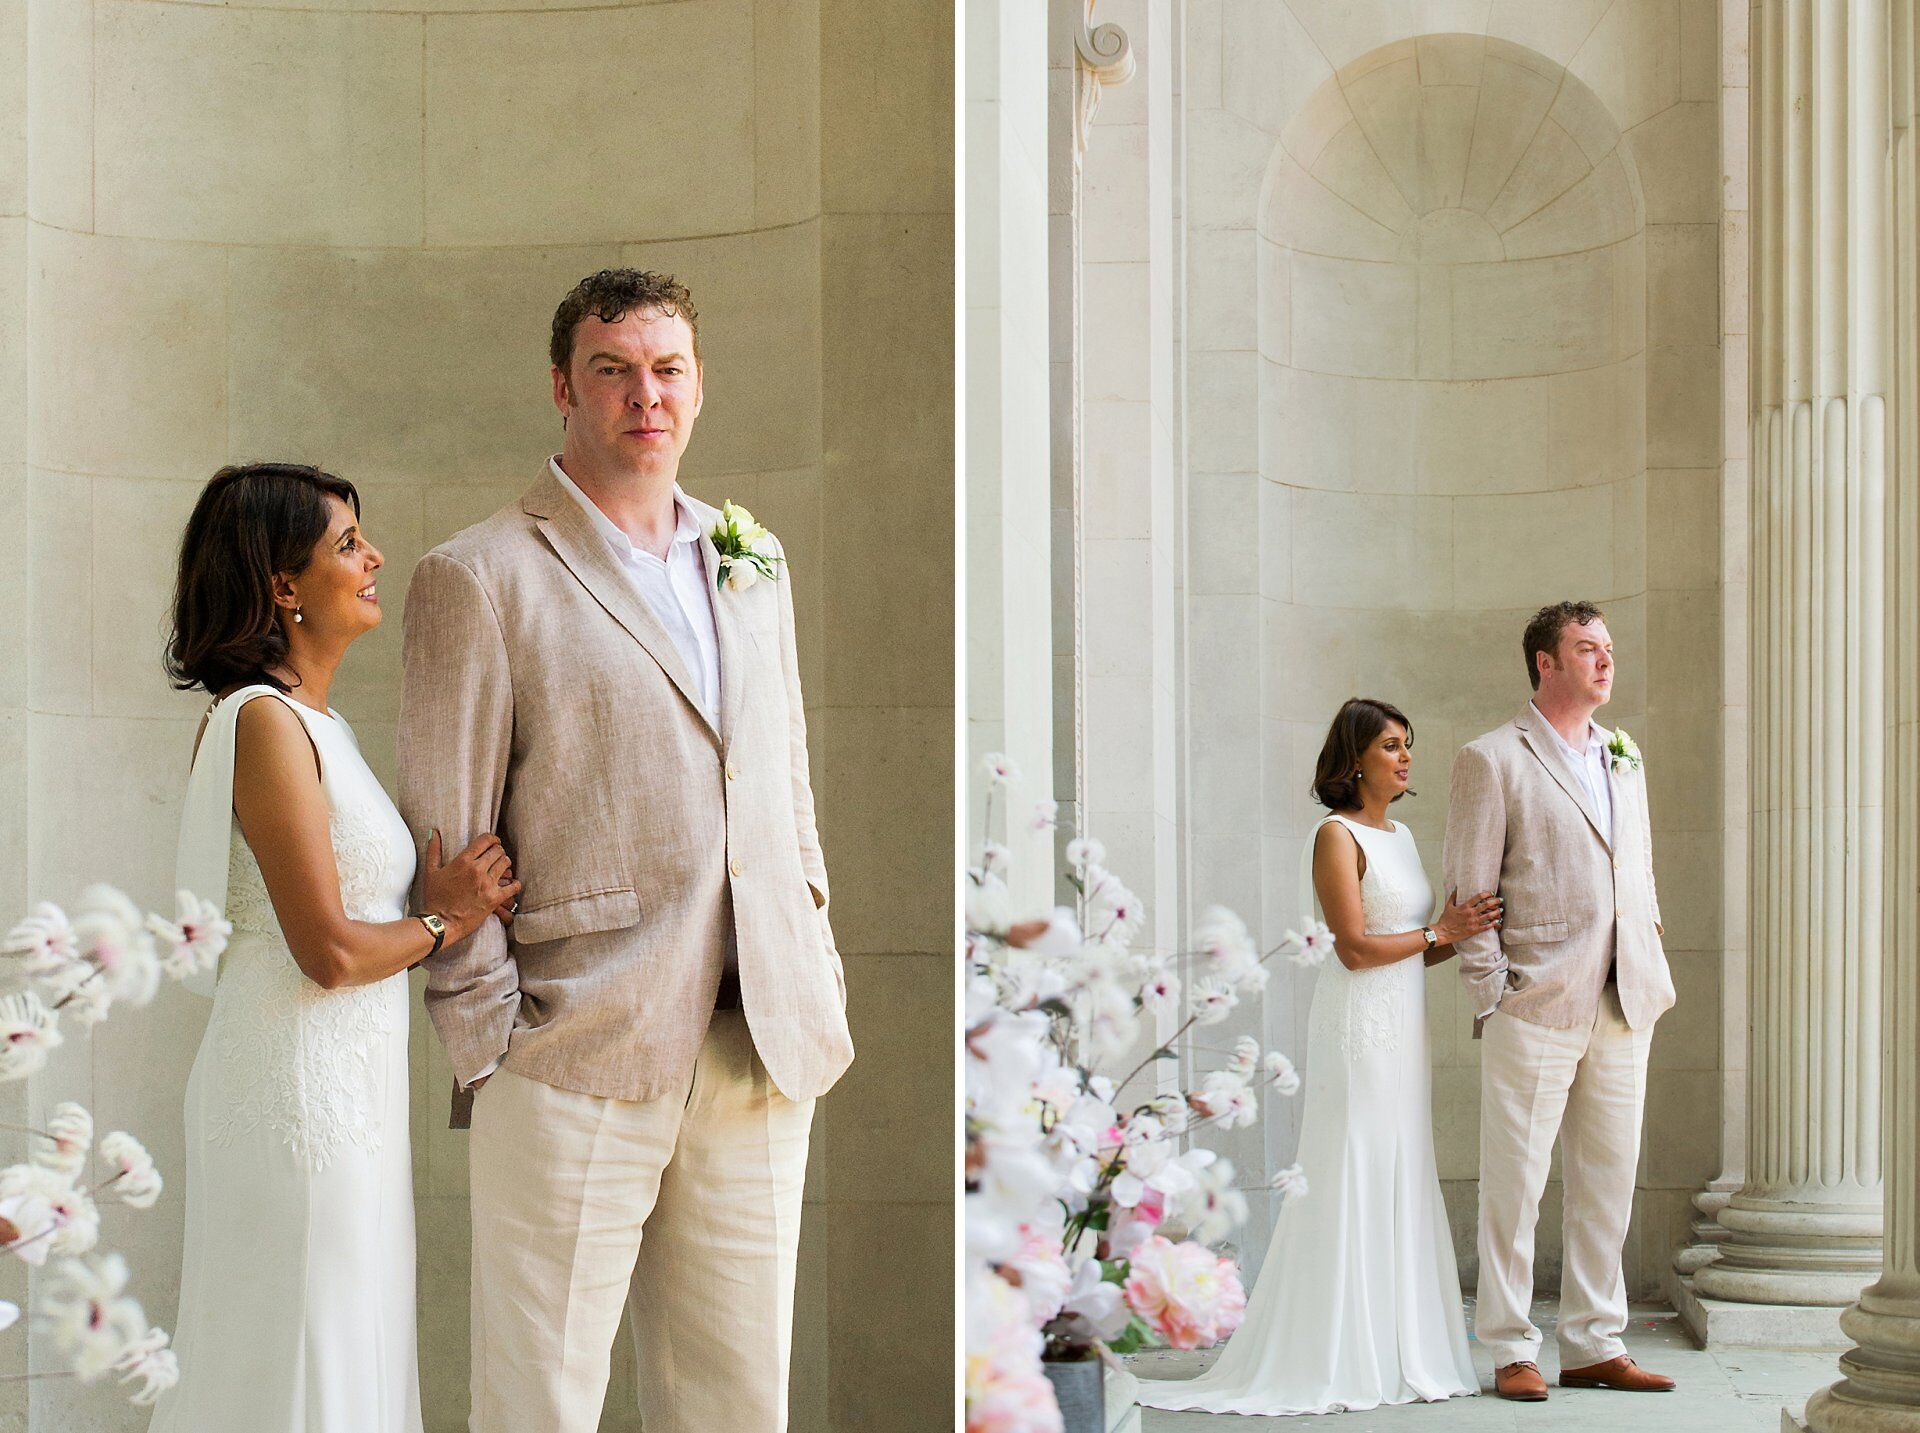 a gride and groom in summer wedding outfits perfect for the 2018 summer heatwave here photographed at old marylebone town hall the home of westminster register office